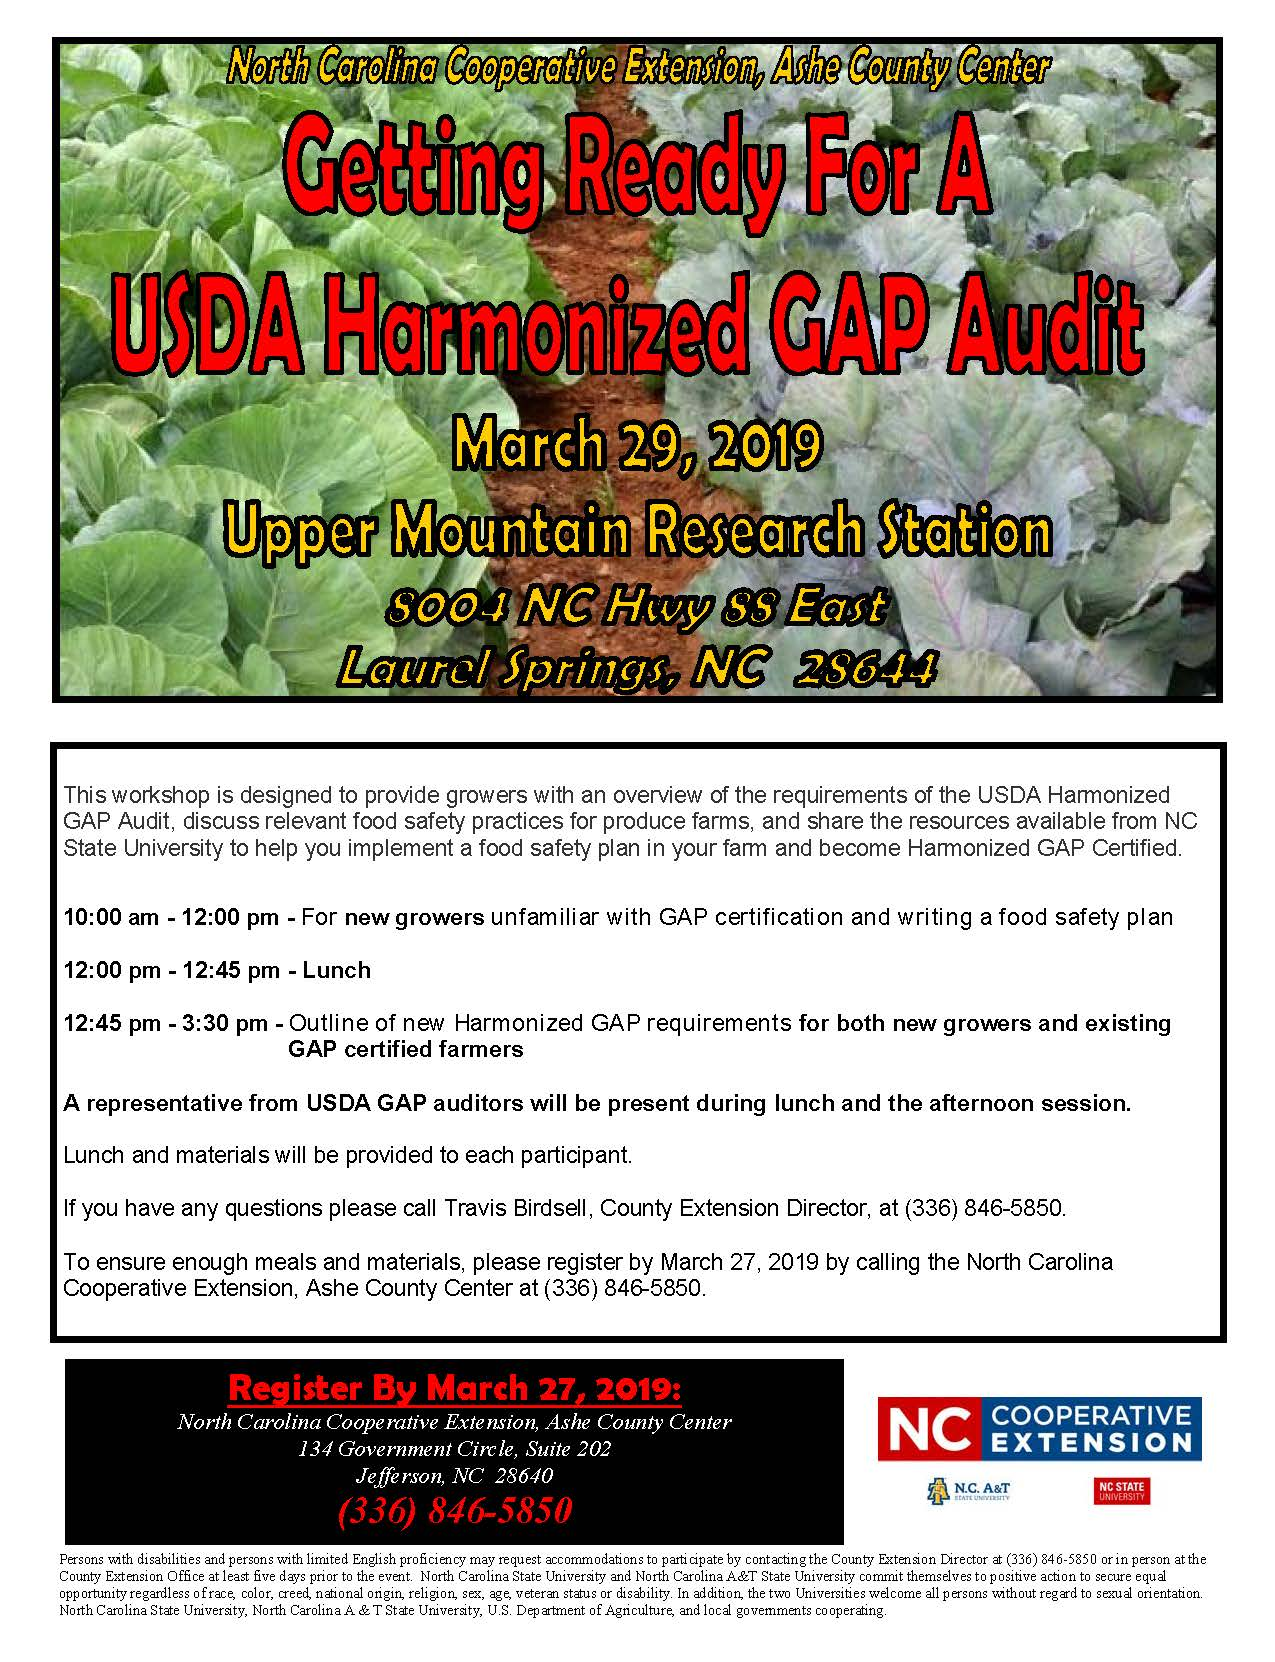 Getting Ready for a USDA Harmonized GAP Audit flyer image